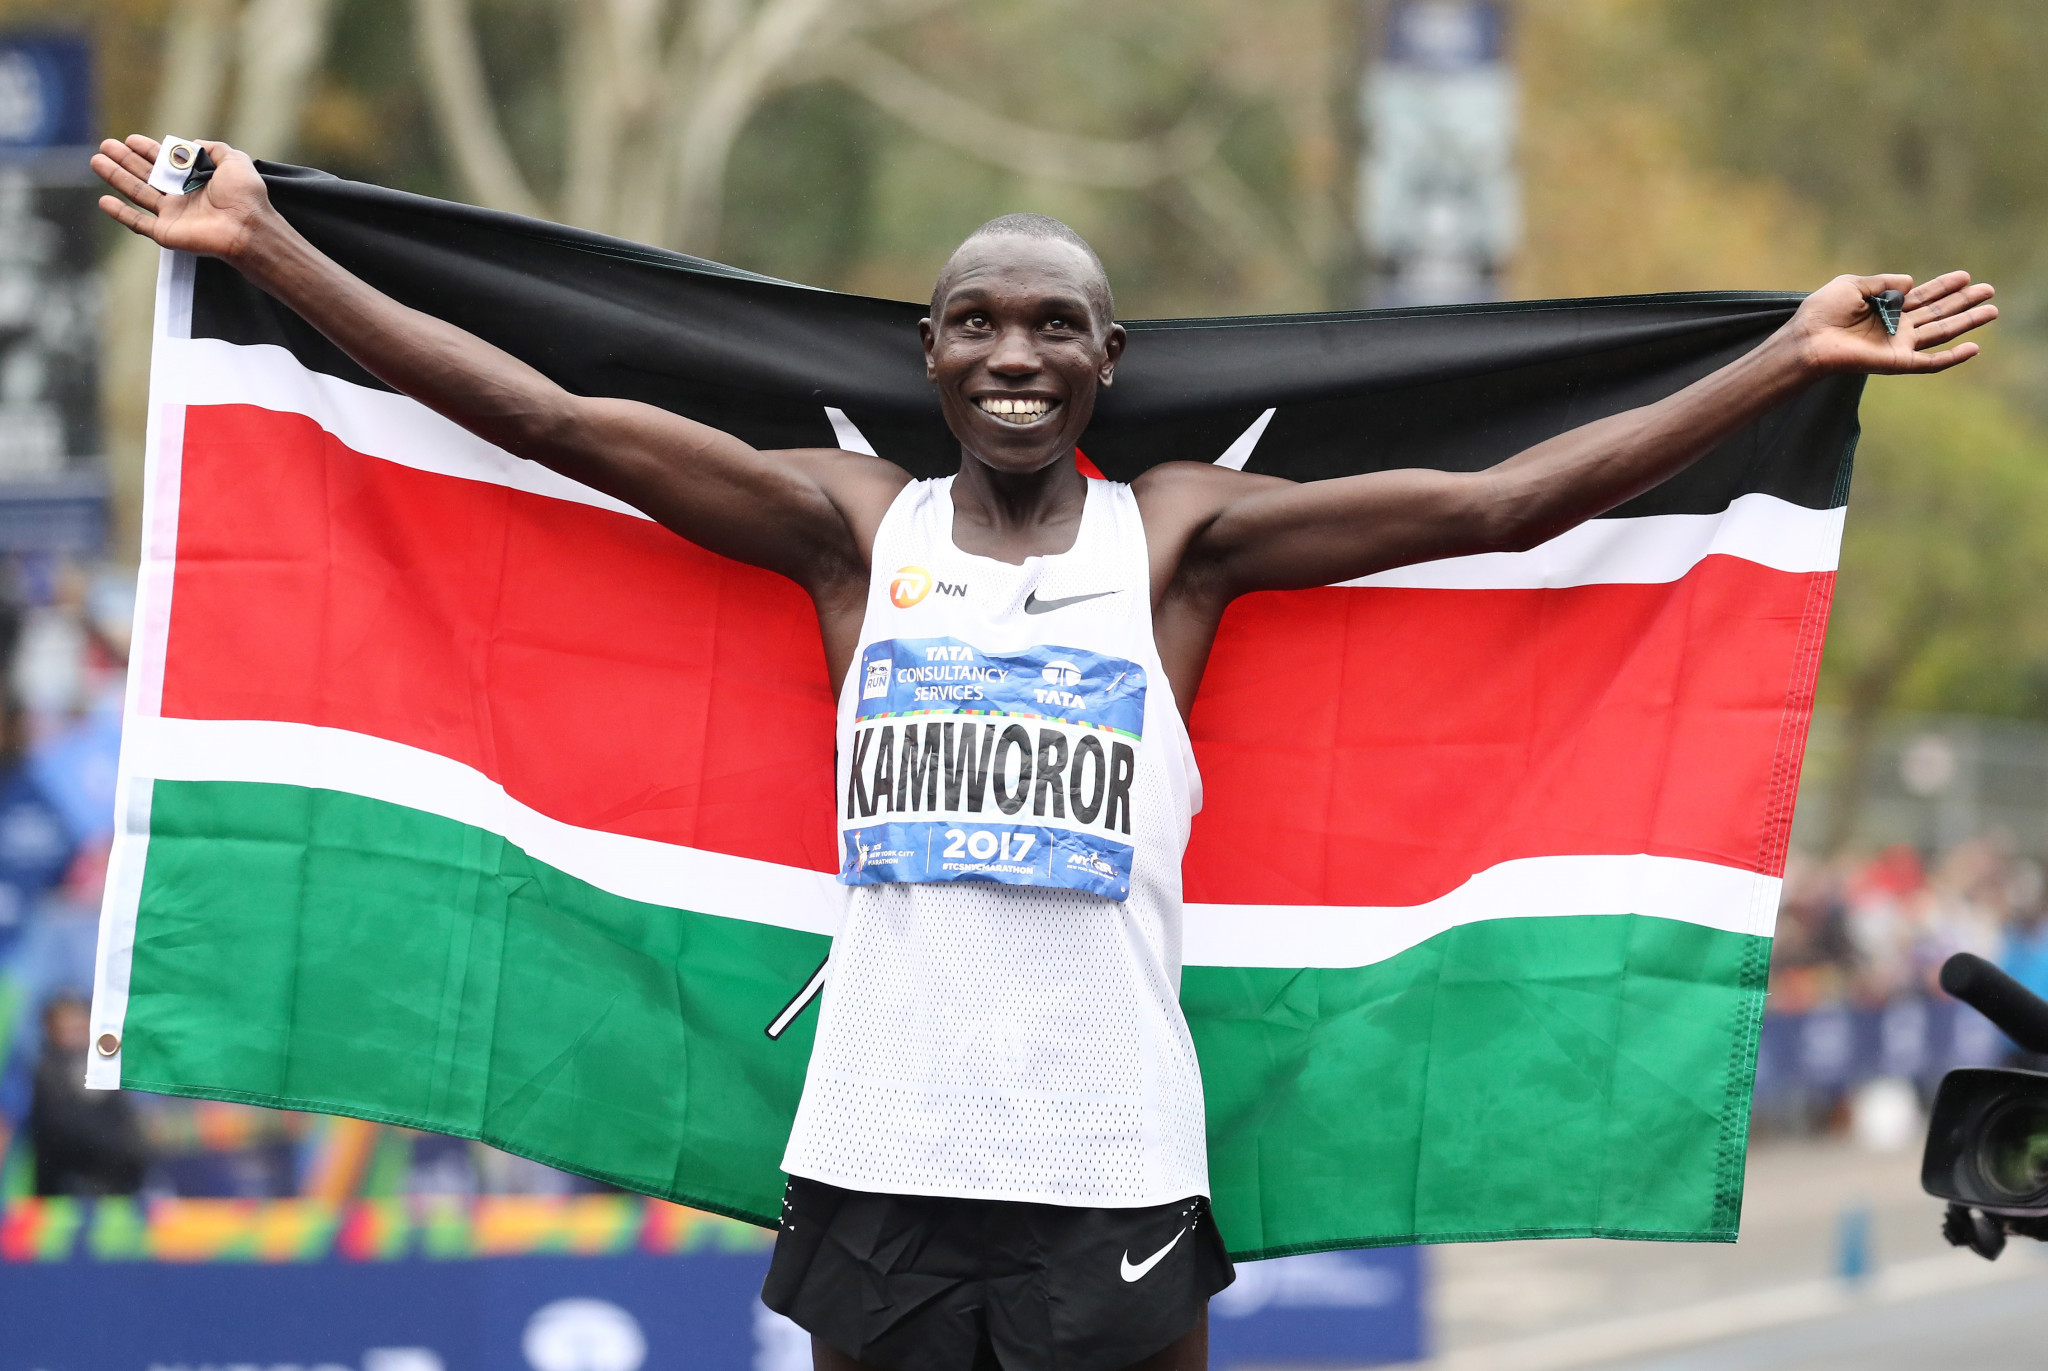 World half marathon record holder Kamworor sustains head and ankle injuries after being hit by motorcycle